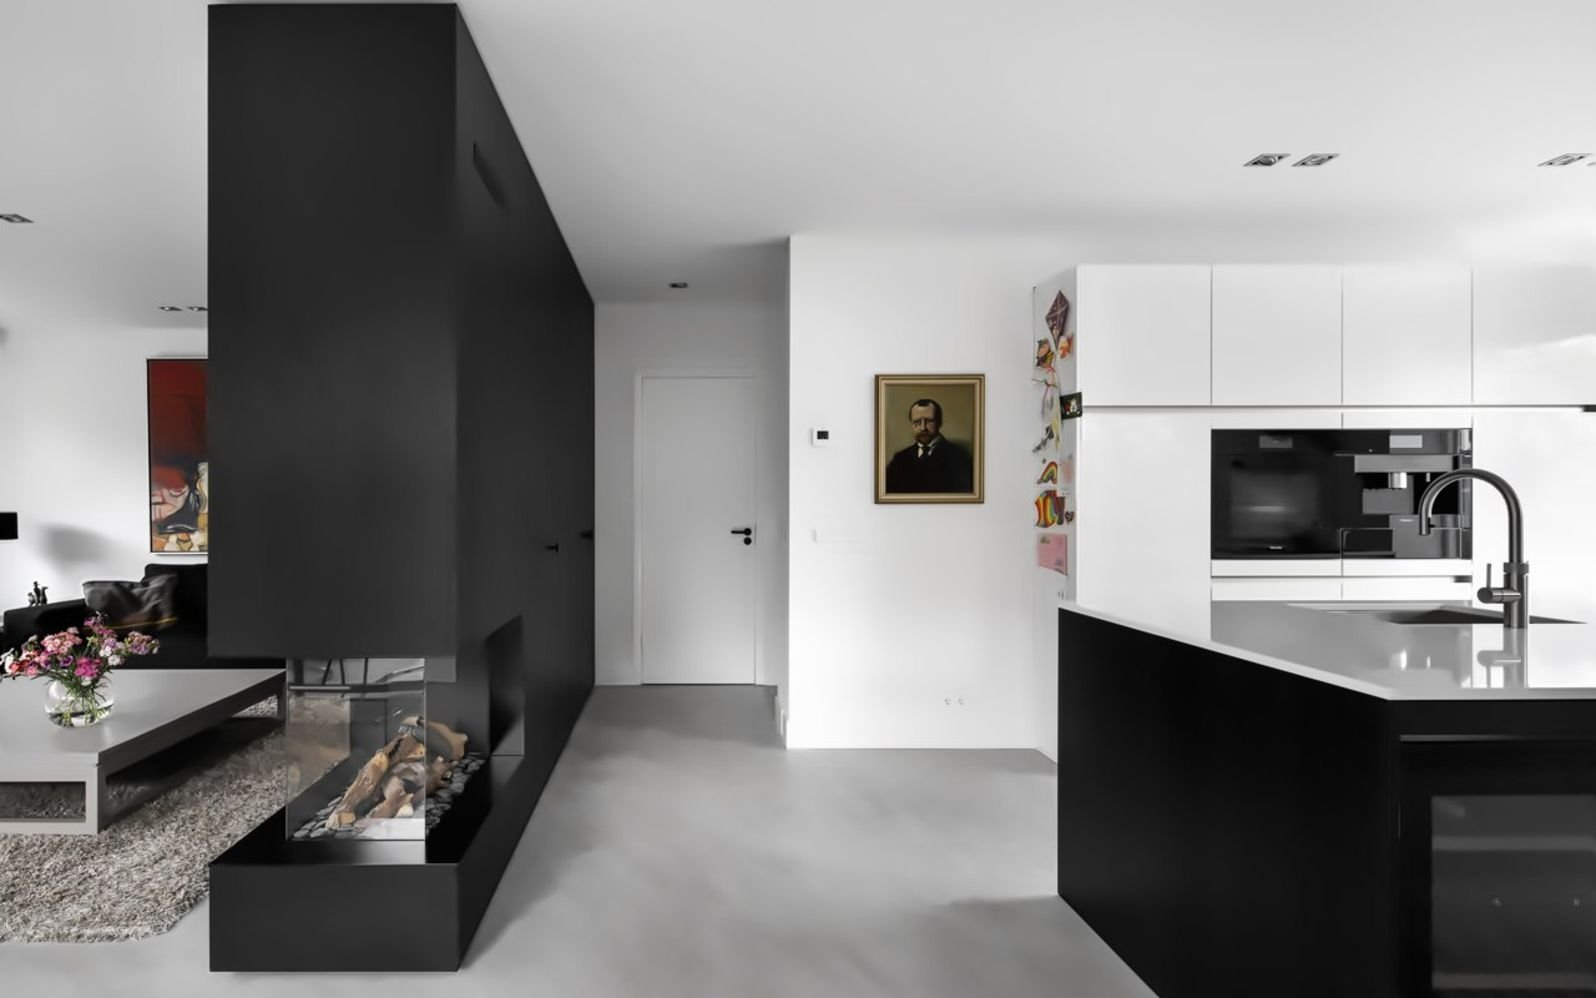 https://elonahome.com/wp-content/uploads/2020/08/Black-white-interior-style-with-simple-yet-modern-furniture-and-accessories-Living-Hillegersberg-3.jpg